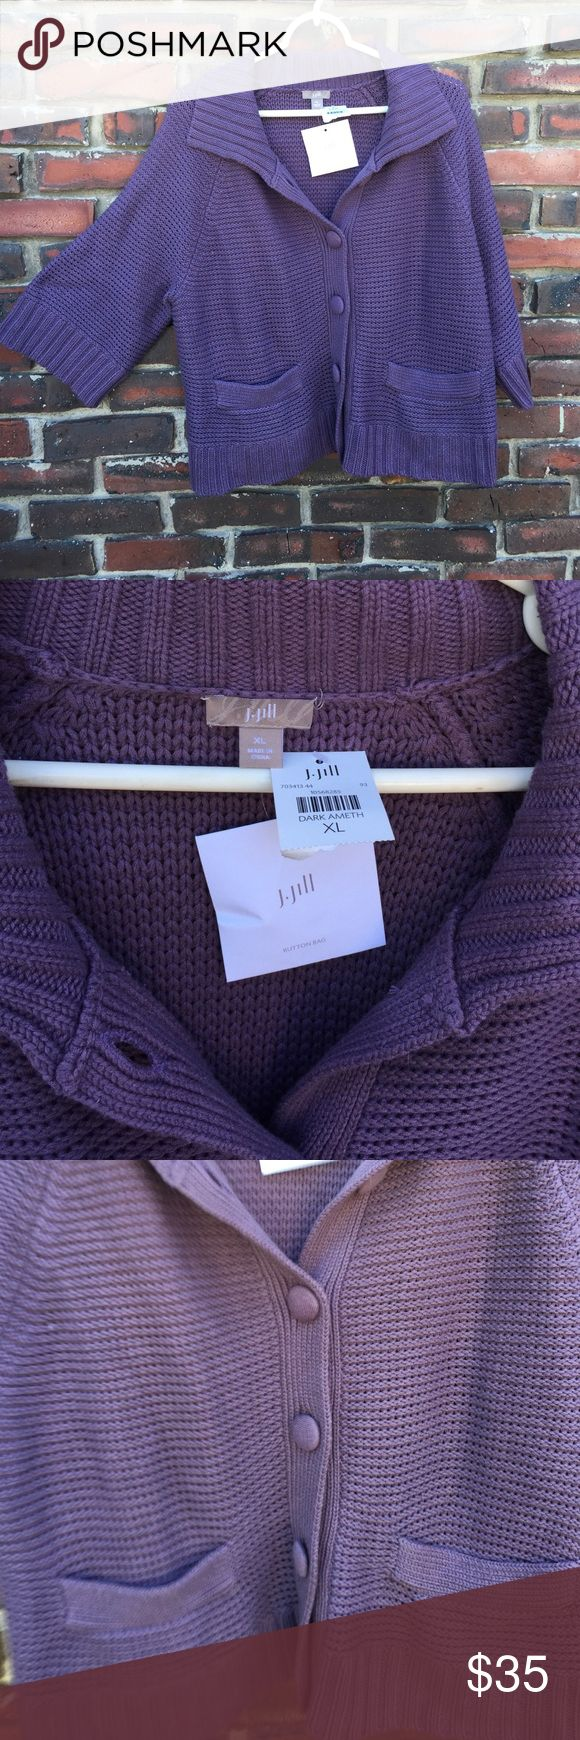 NWT J Jill Amethyst Color Sweater XL NWT J. Jill Amethyst Colored Sweater, size ex L, 5 buttons down the front, three-quarter length wide sleeves, two front pockets, collard . J. Jill Sweaters